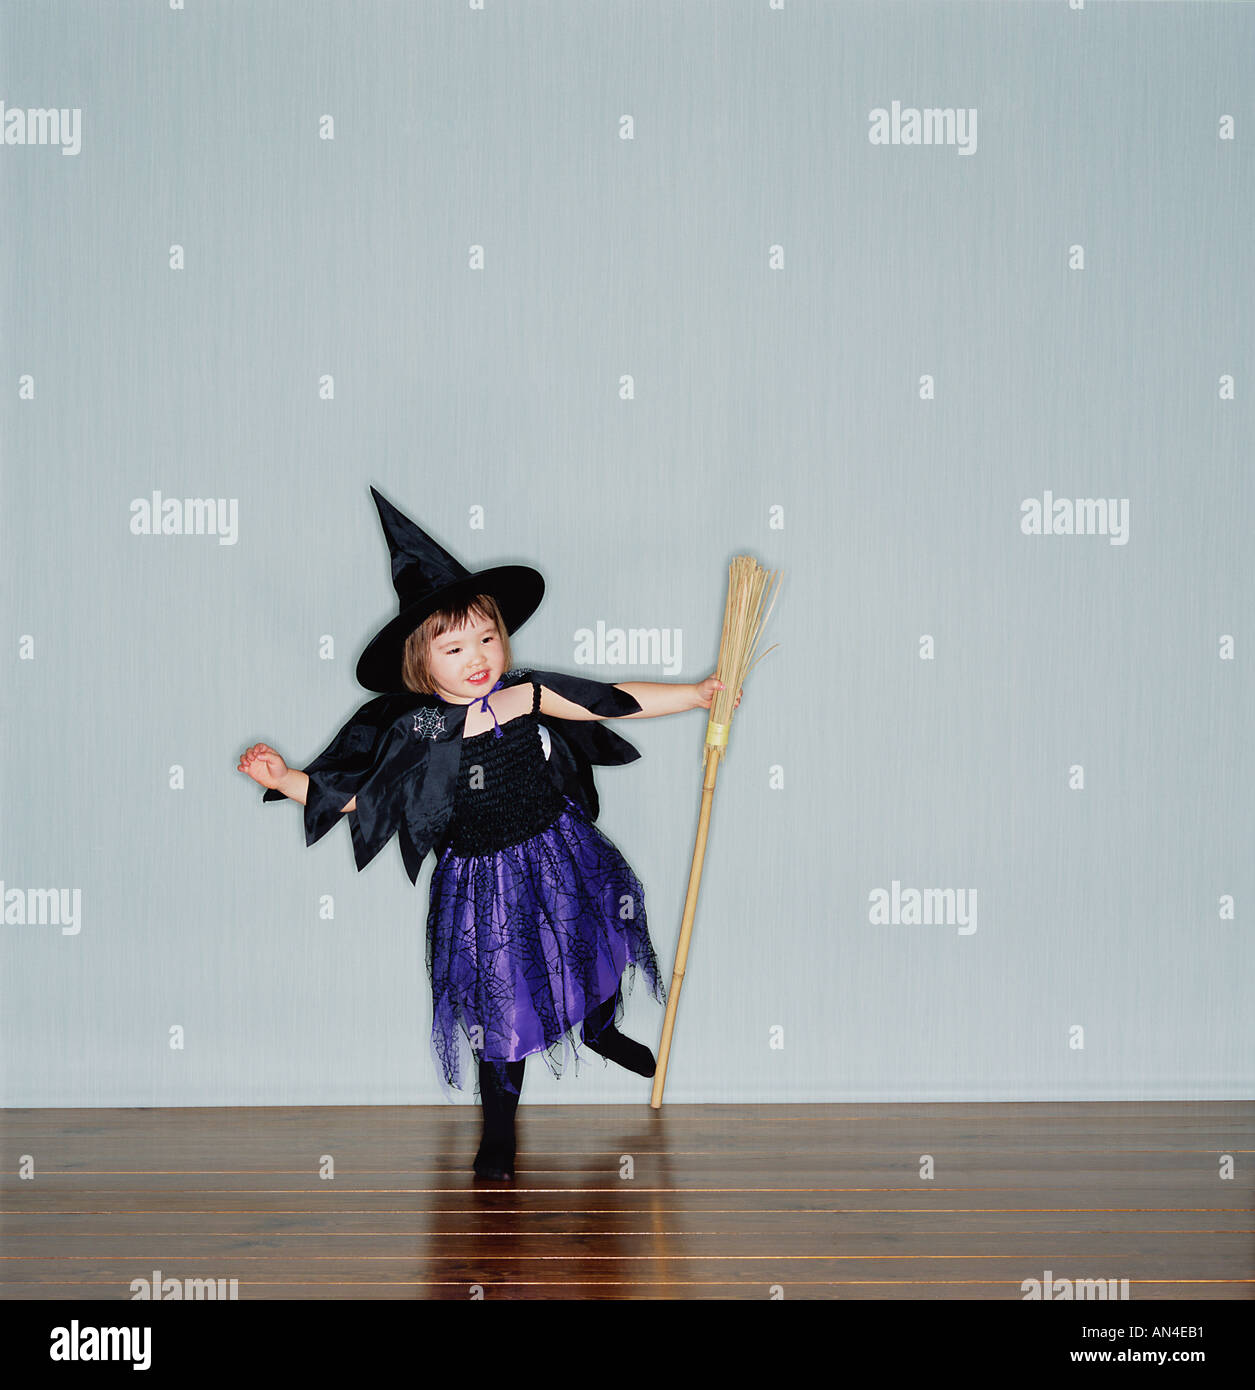 Bambino in WITCHS OUTFIT Immagini Stock